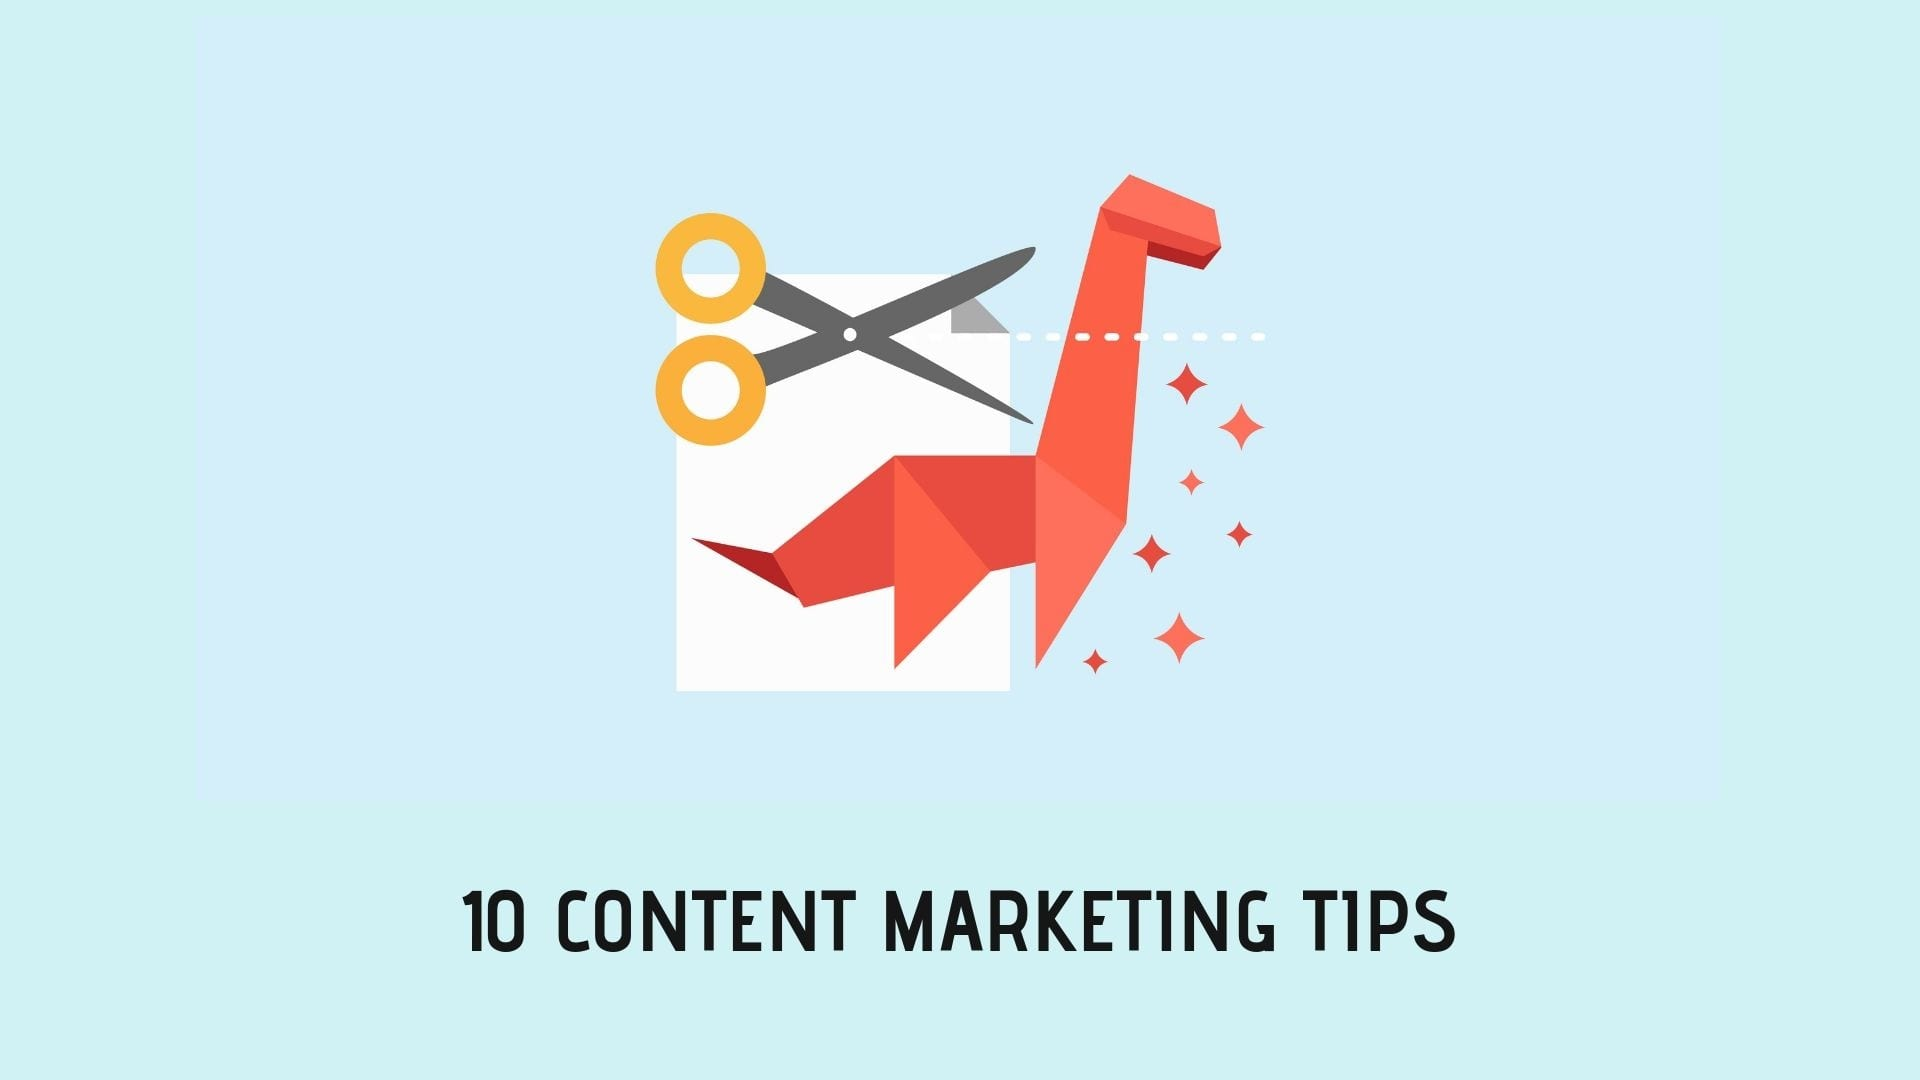 Content can be a valuable asset for the brand strategy.